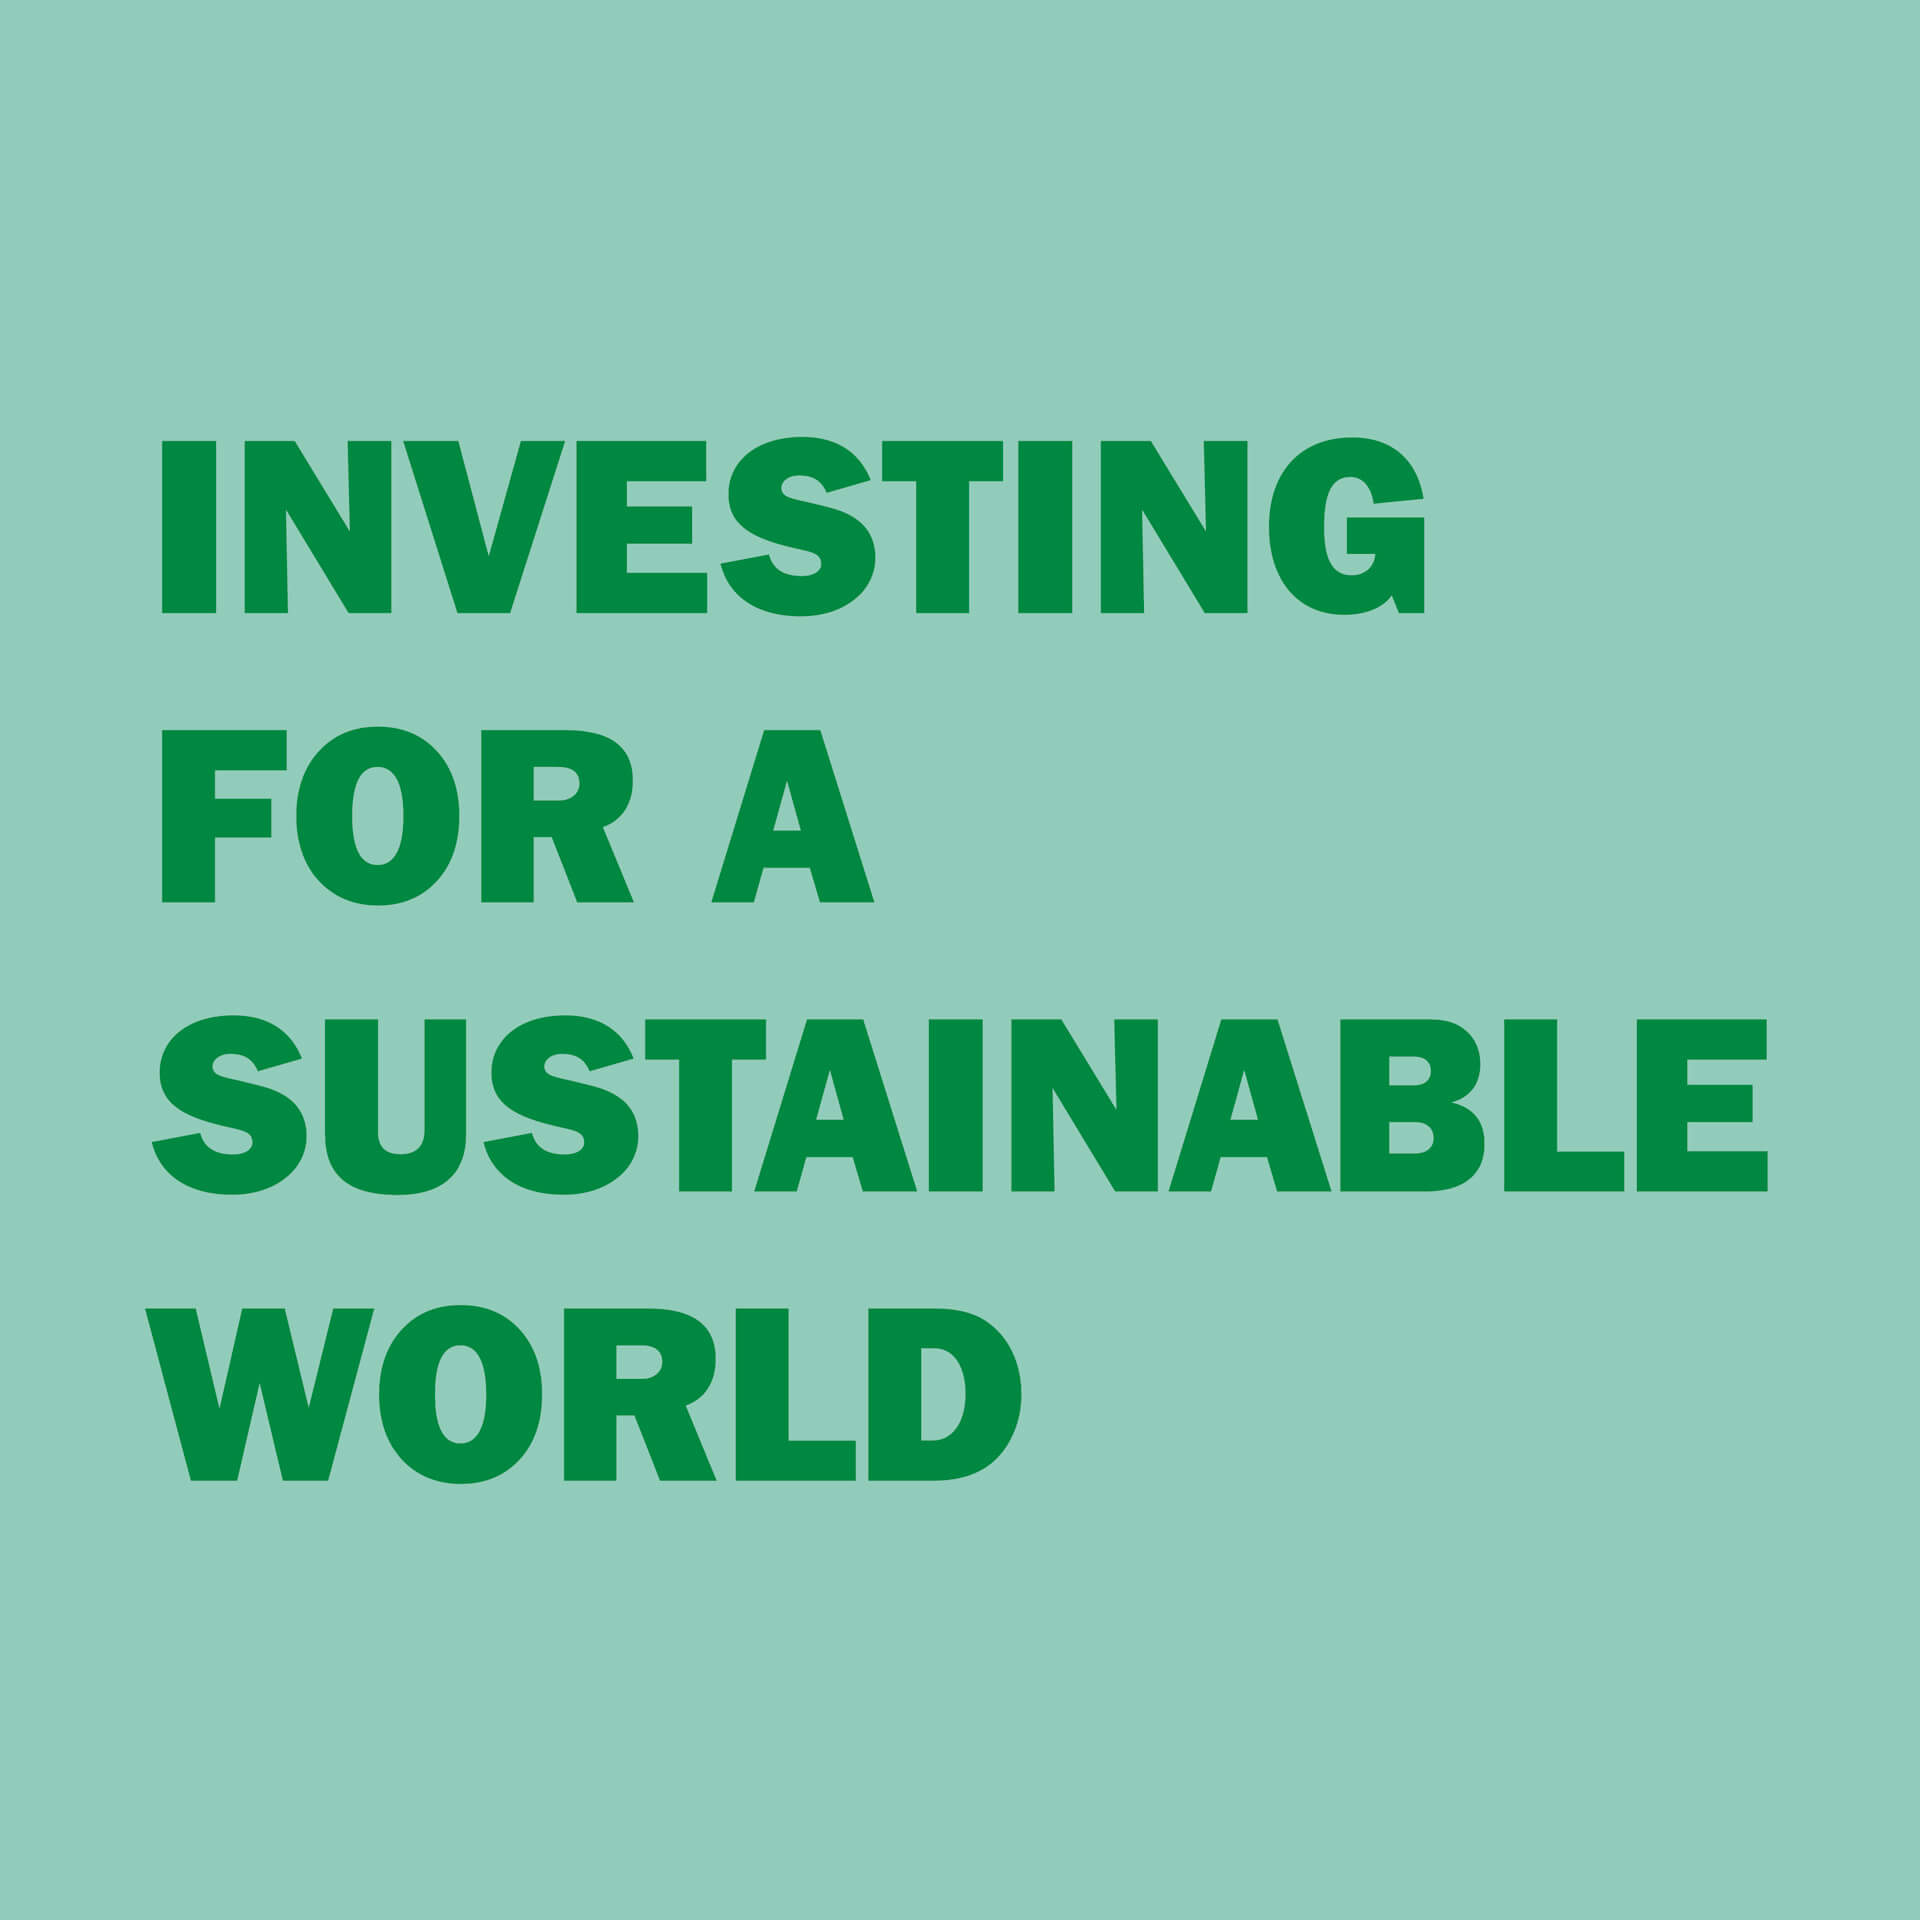 Investing for a sustainable world, studio duel